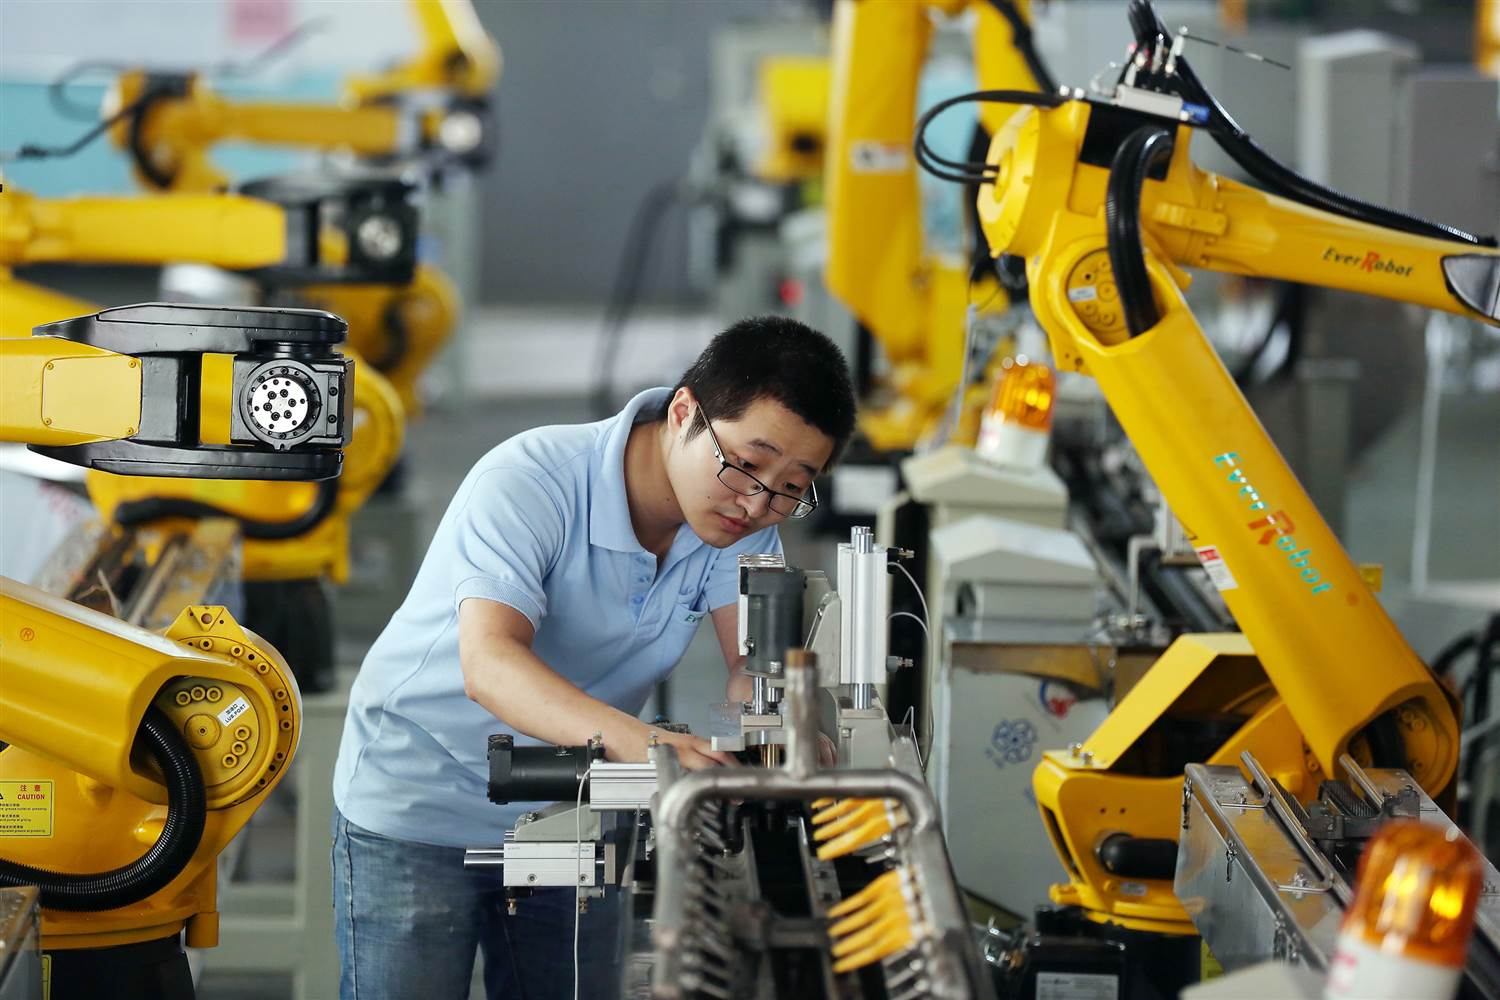 How Robots Are Changing the Industrial Landscape